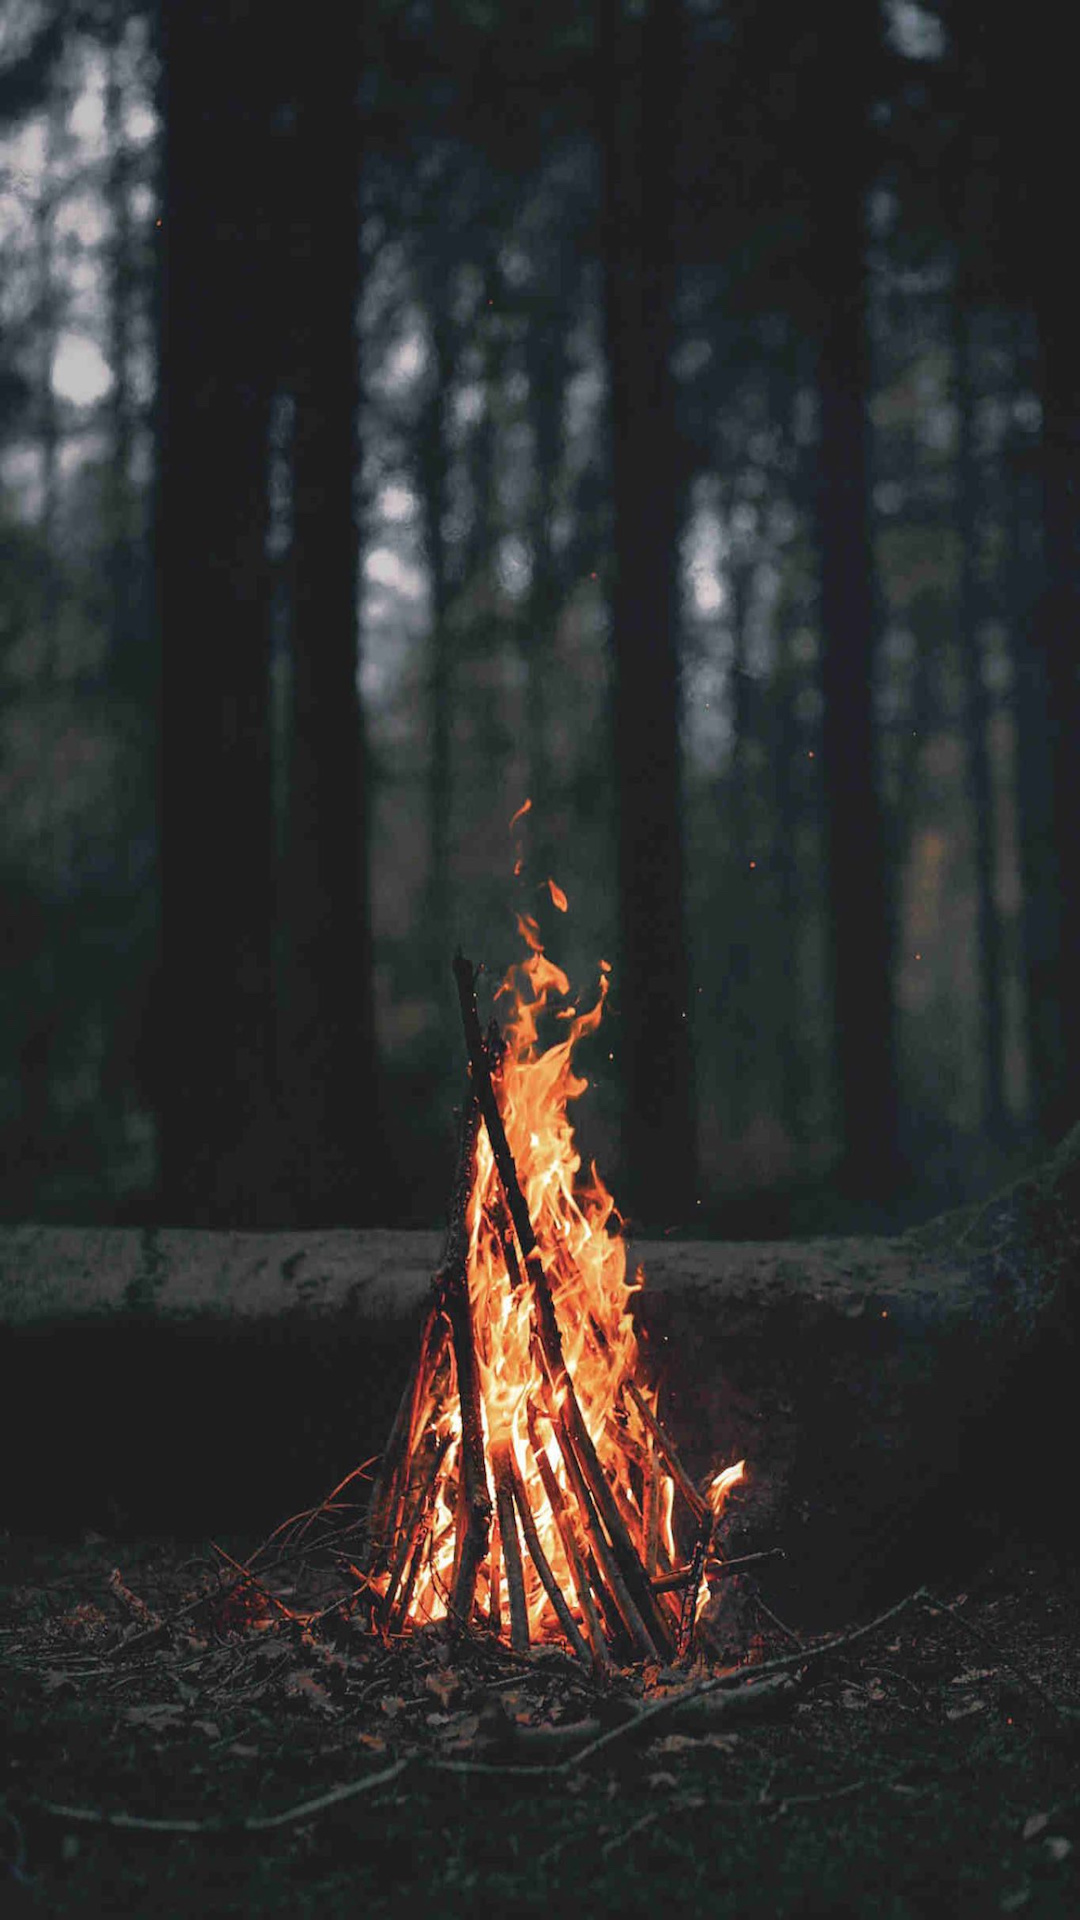 iPhone wallpaper campfire2 3Wallpapers : notre sélection de fonds d'écran du 12/02/2018